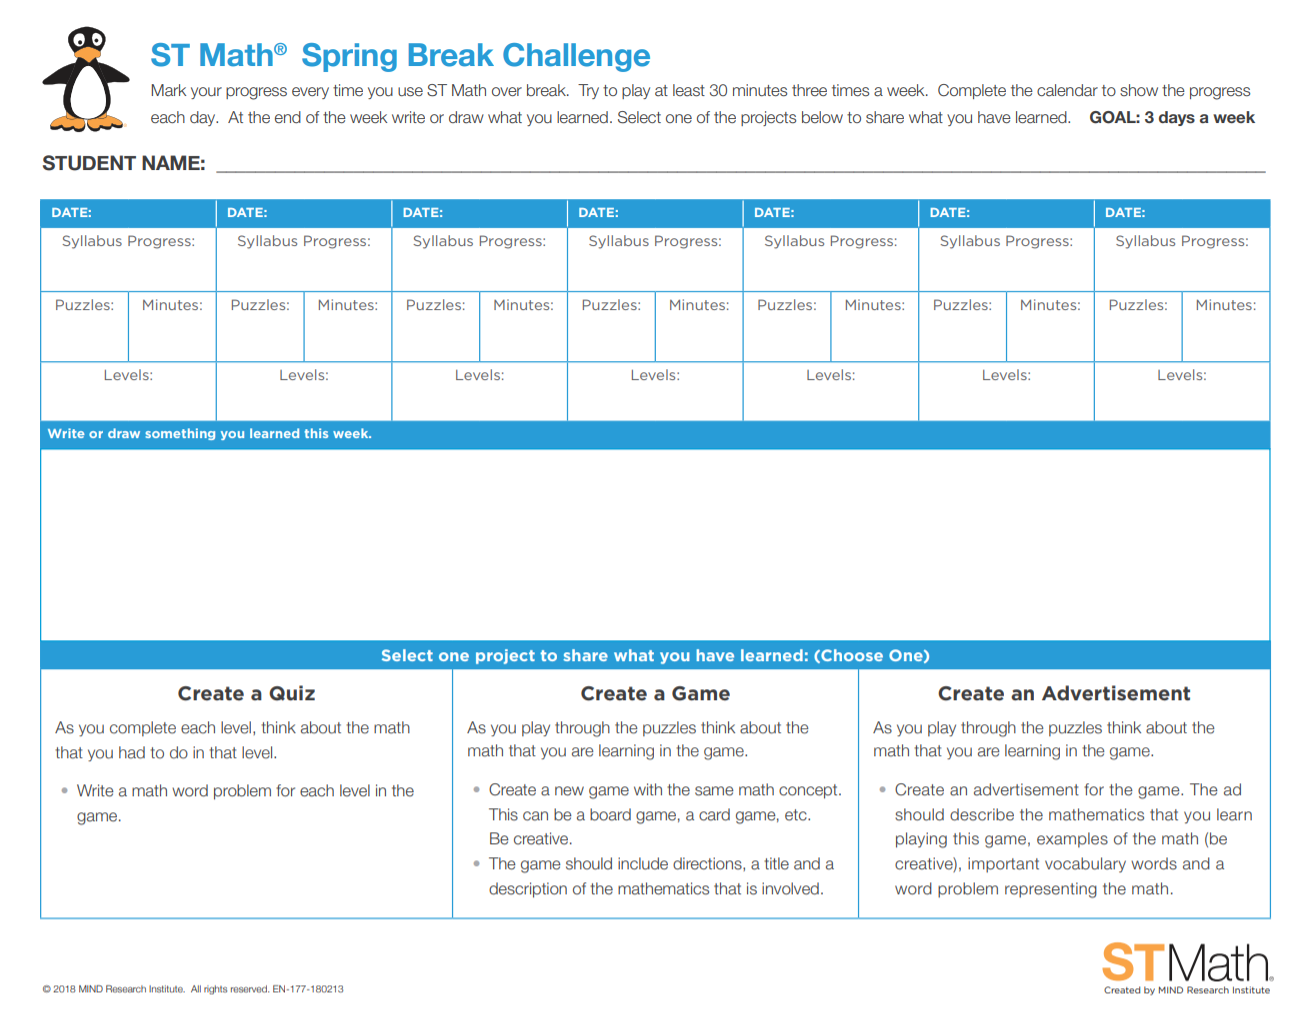 st-math-spring-break-challenge.png